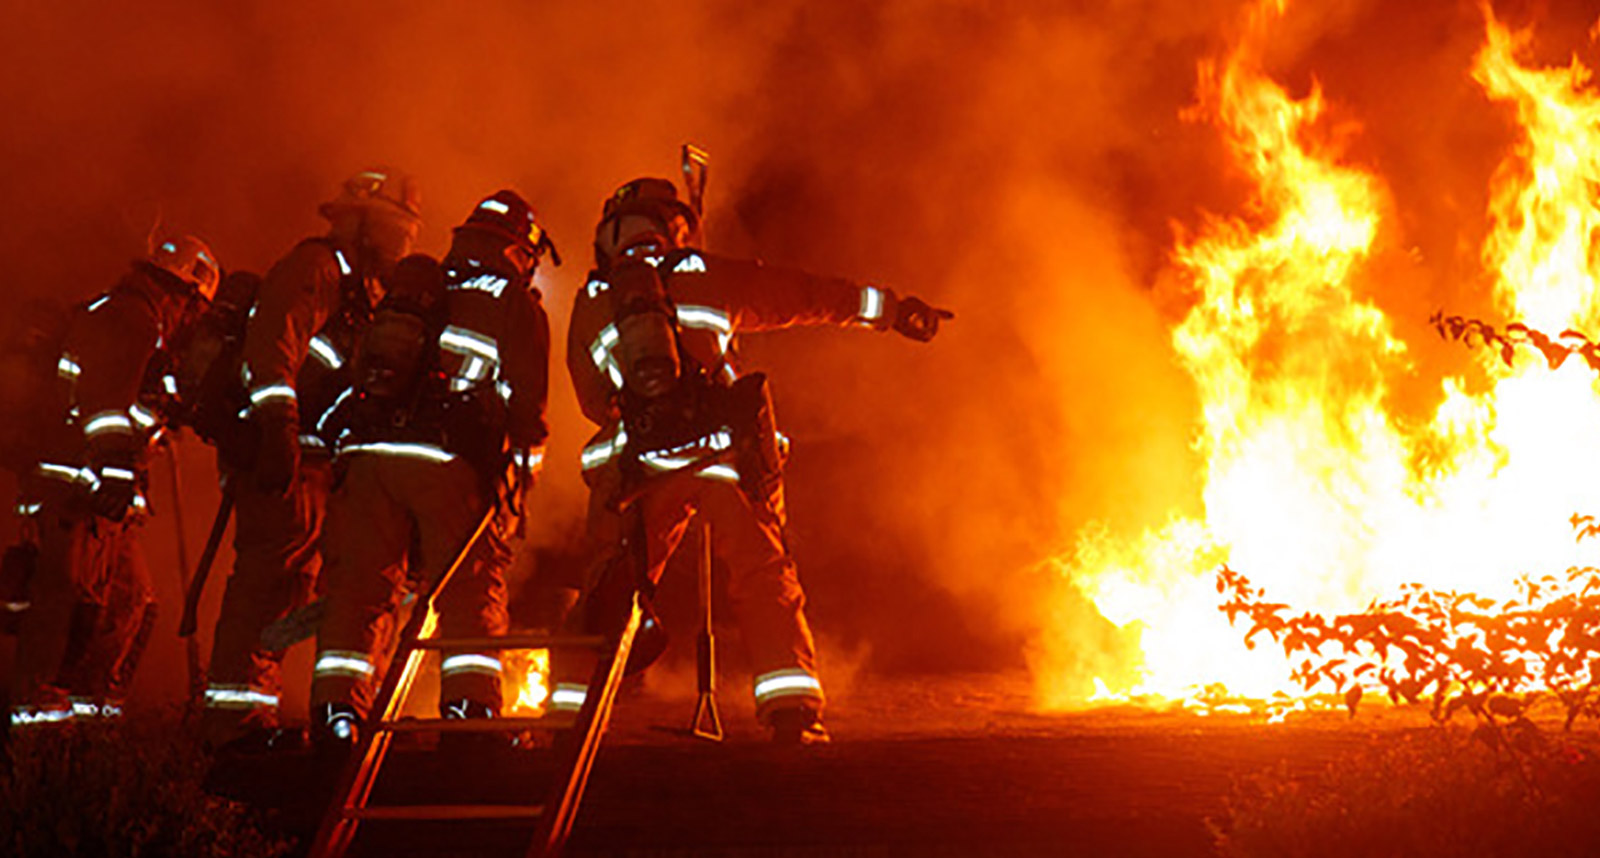 Preventing Cancer in the Fire Service